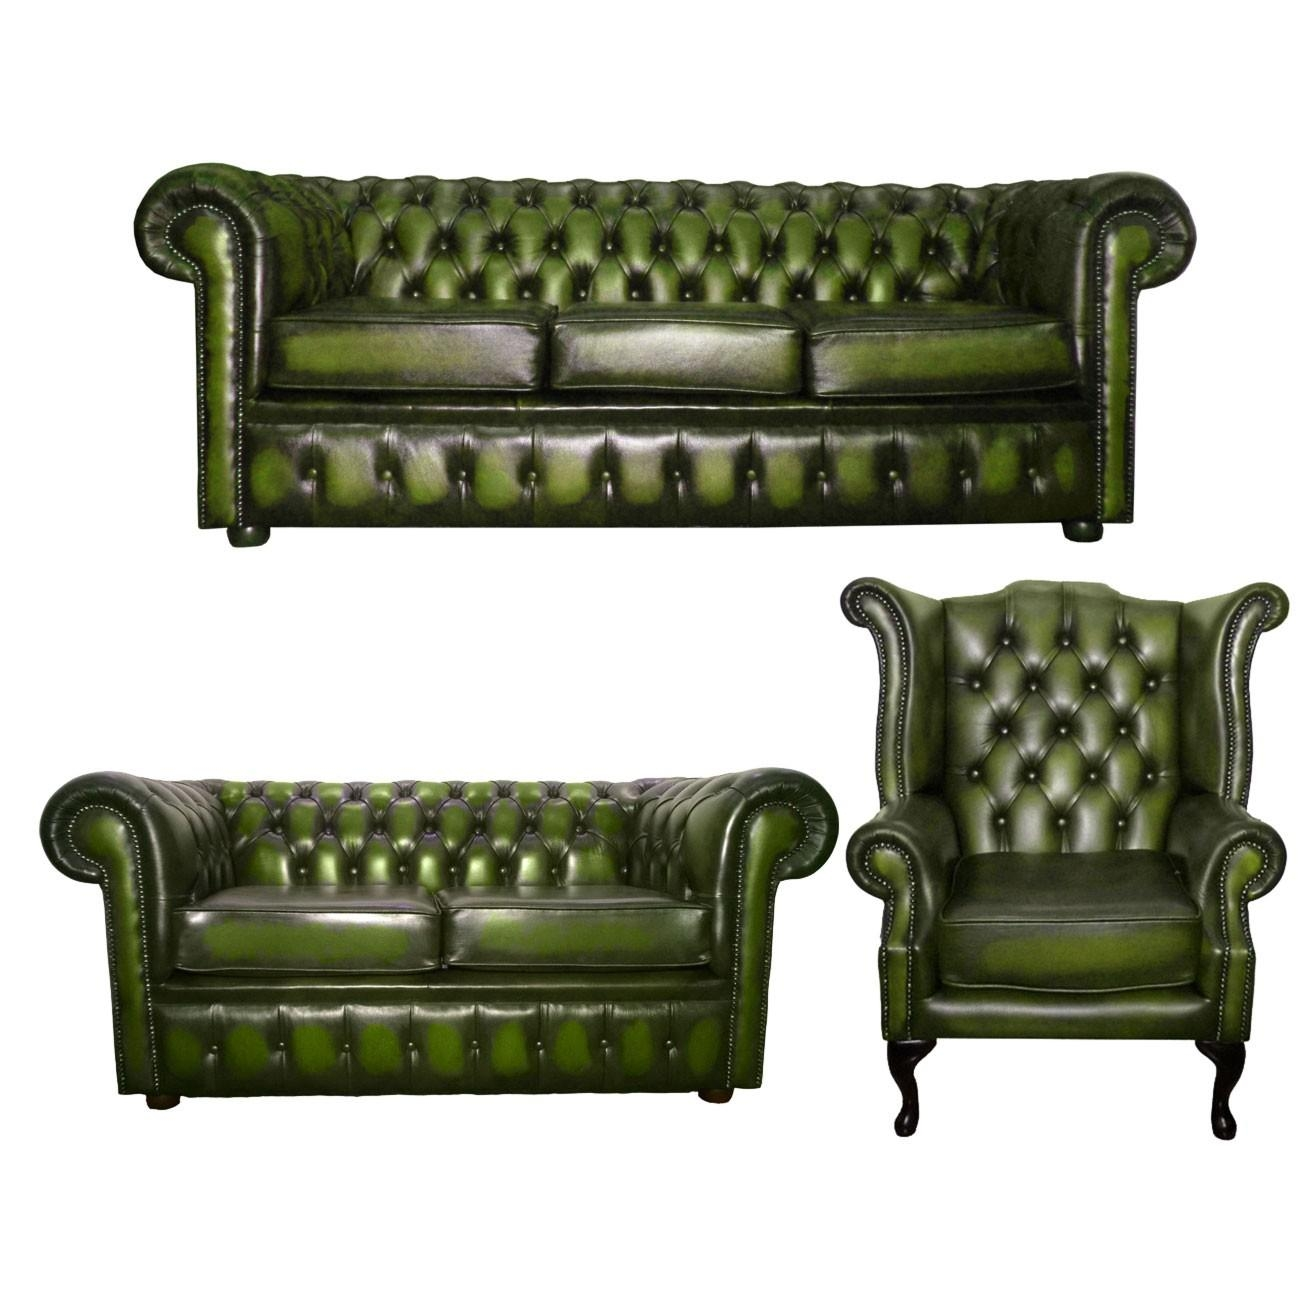 Green Leather Chesterfield Sofa | Sofa Gallery | Kengire With Regard To Chesterfield Sofas And Chairs (Image 13 of 20)